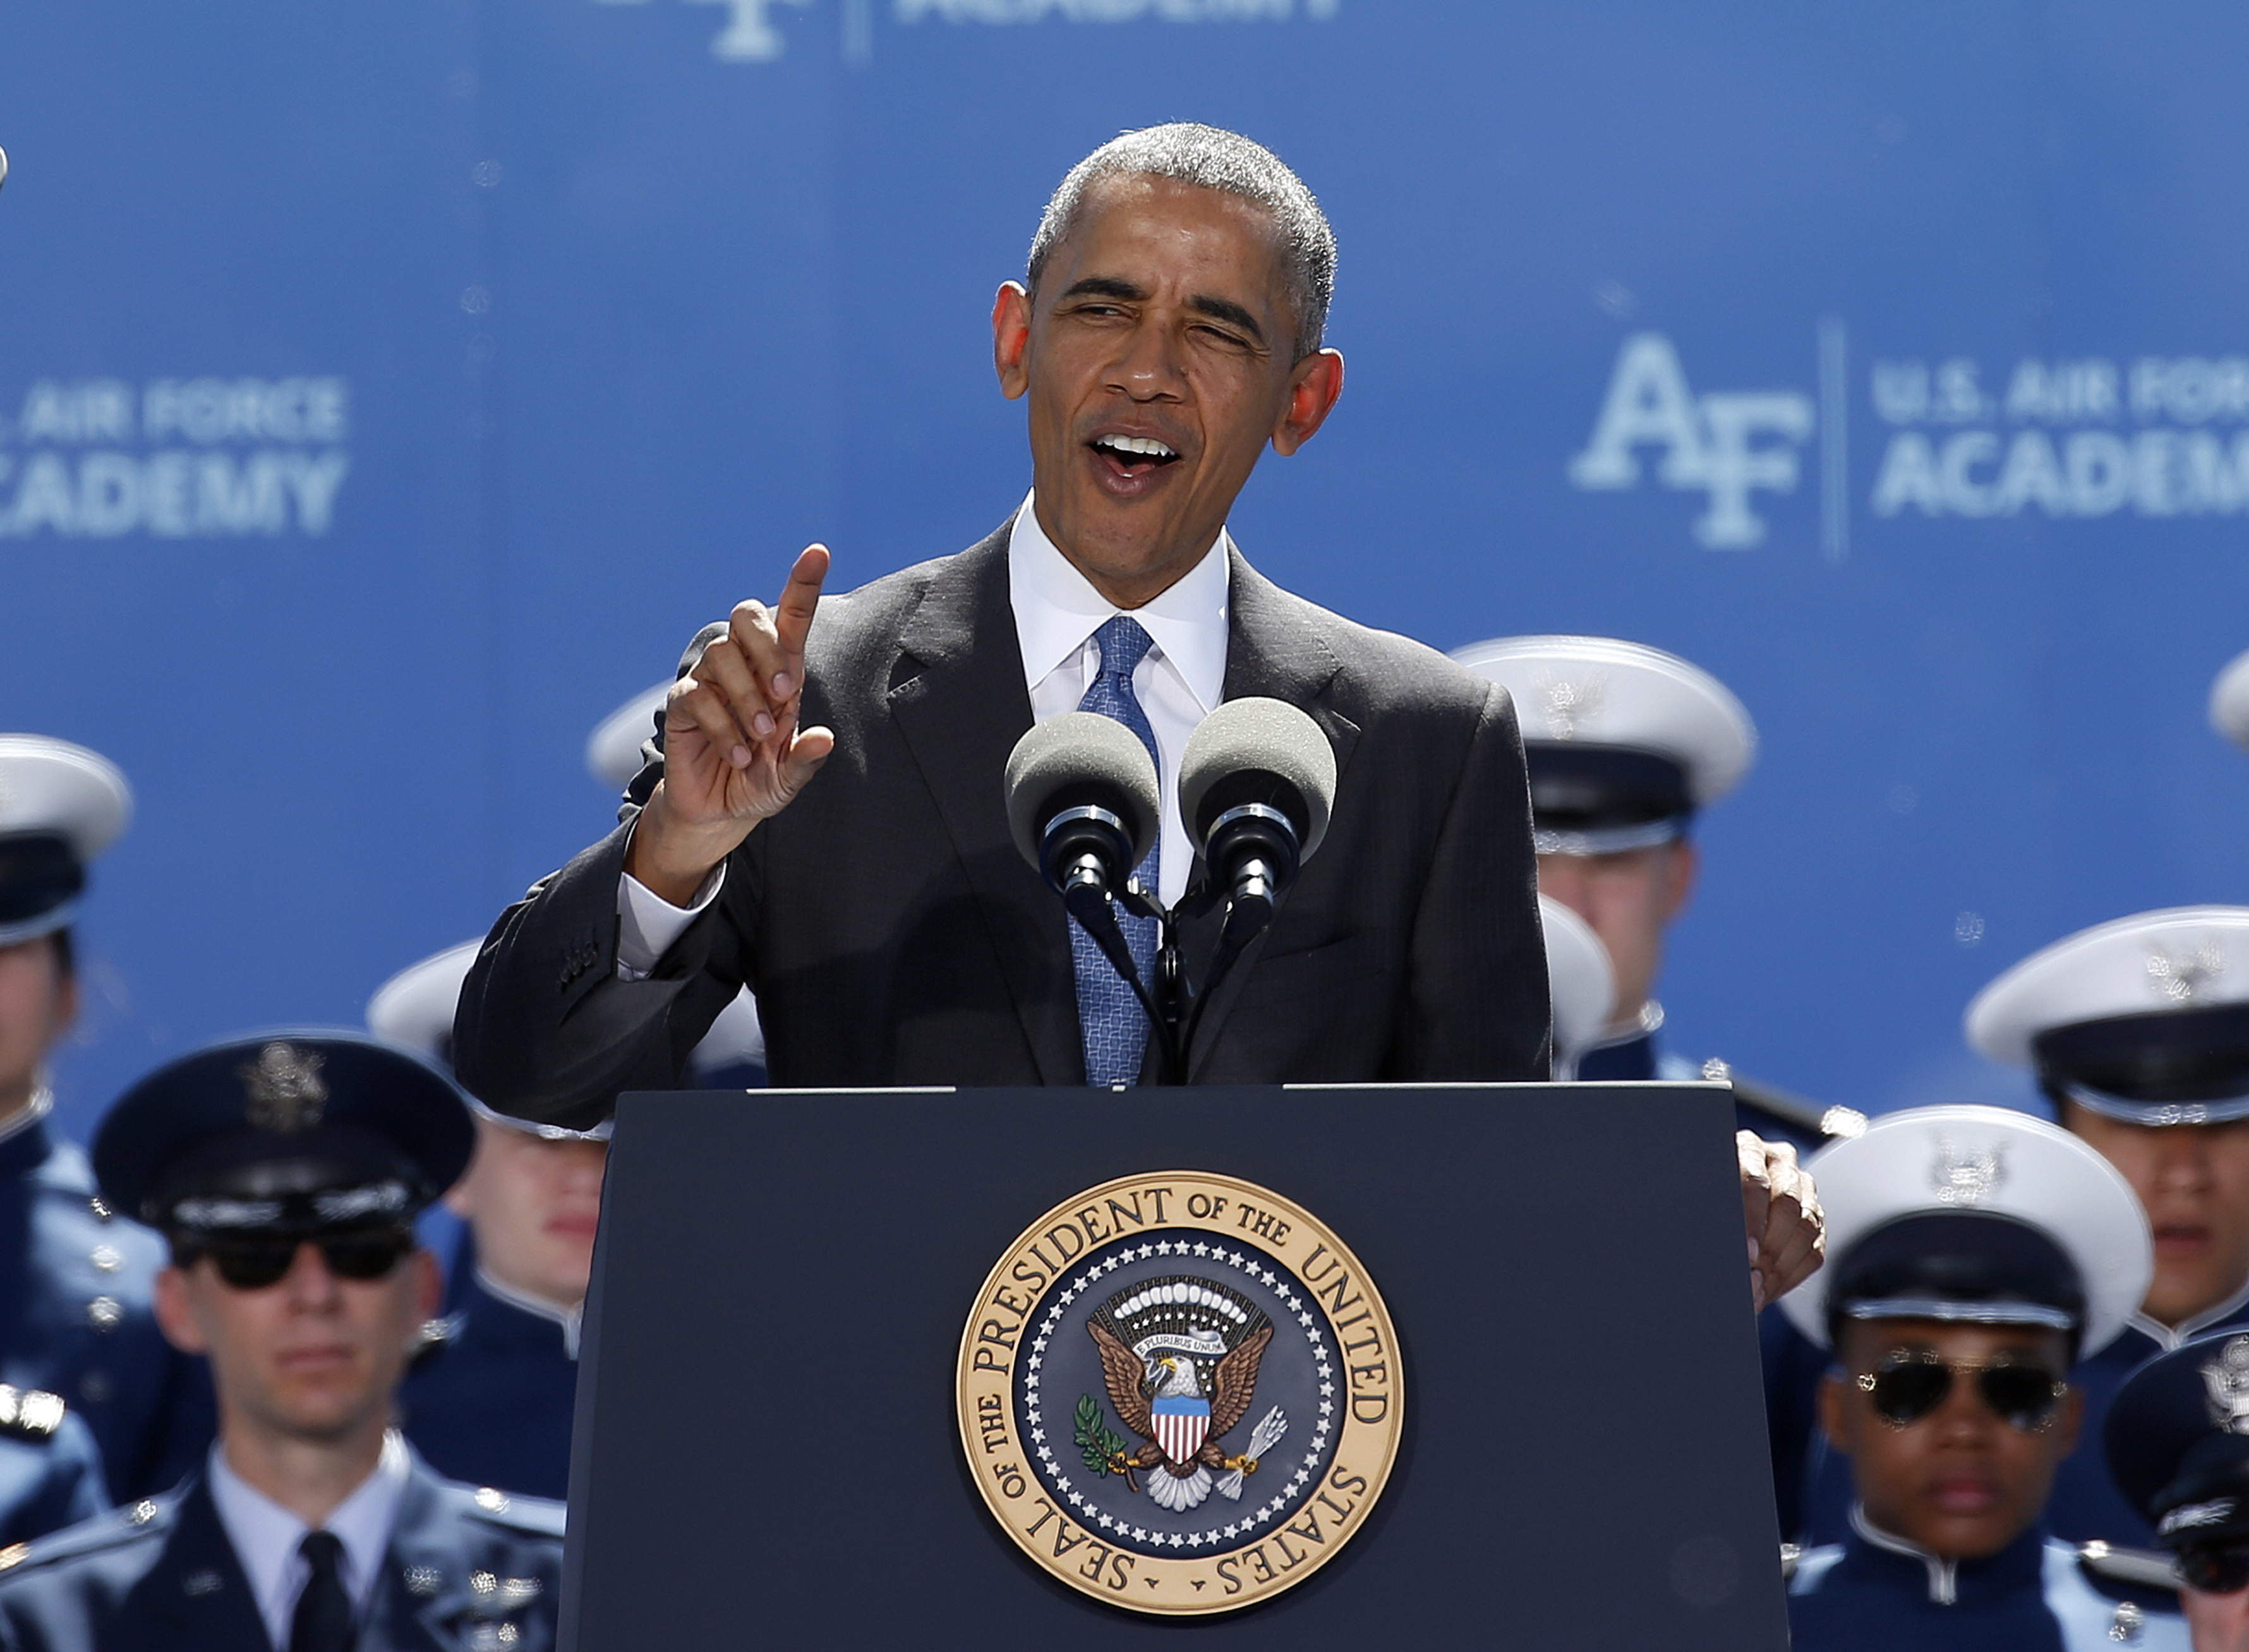 Photo: Obama, Air Force Academy